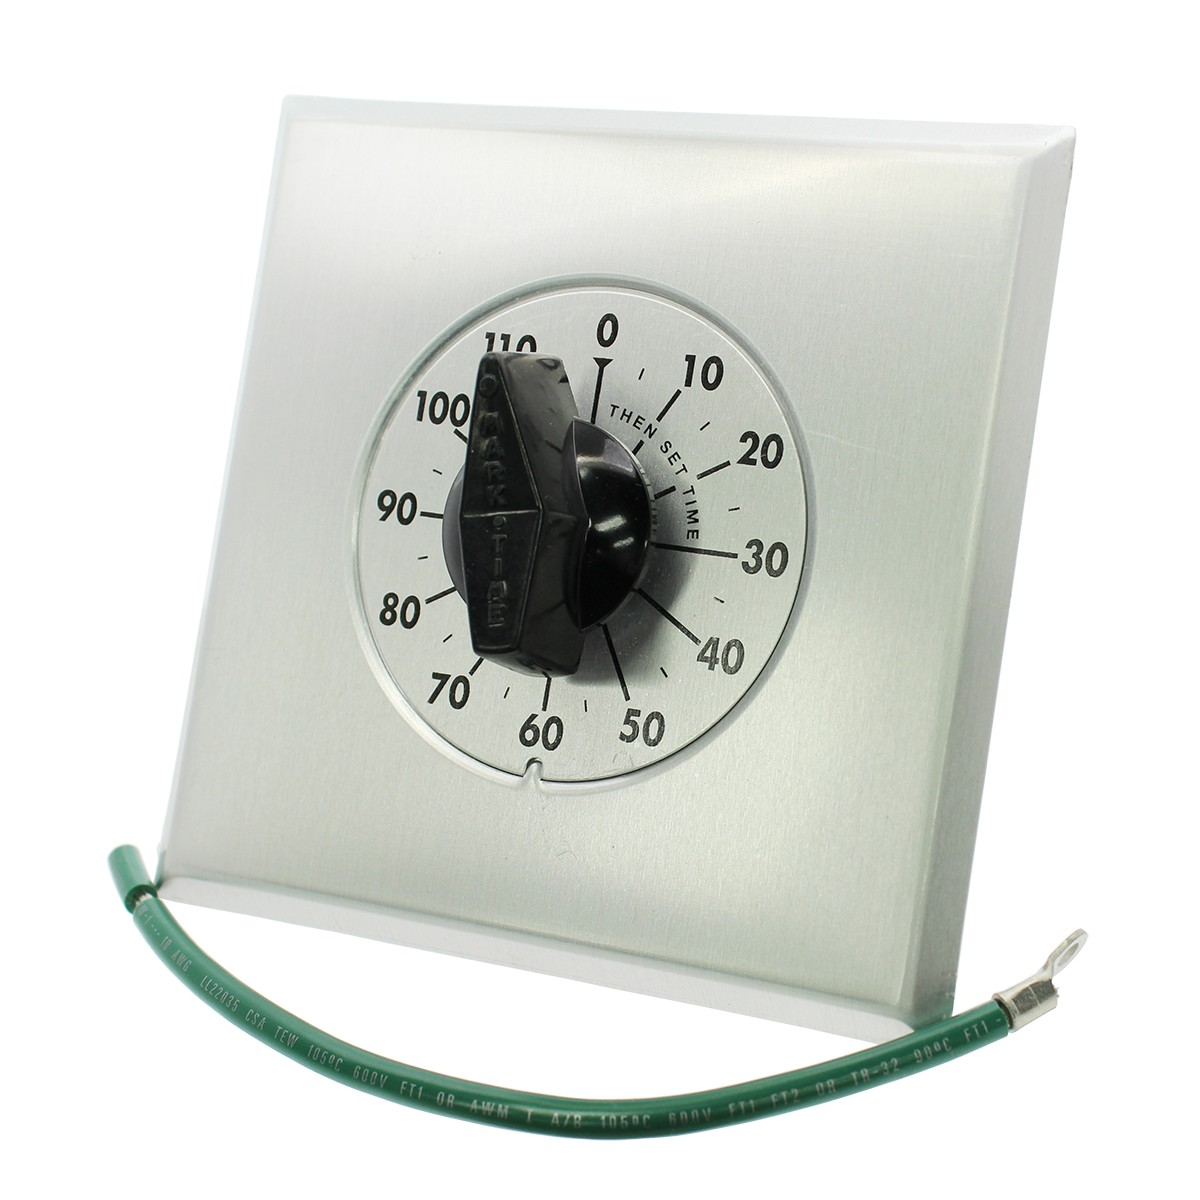 28 AMP Heavy Duty 70 AB Series In-Wall Timer